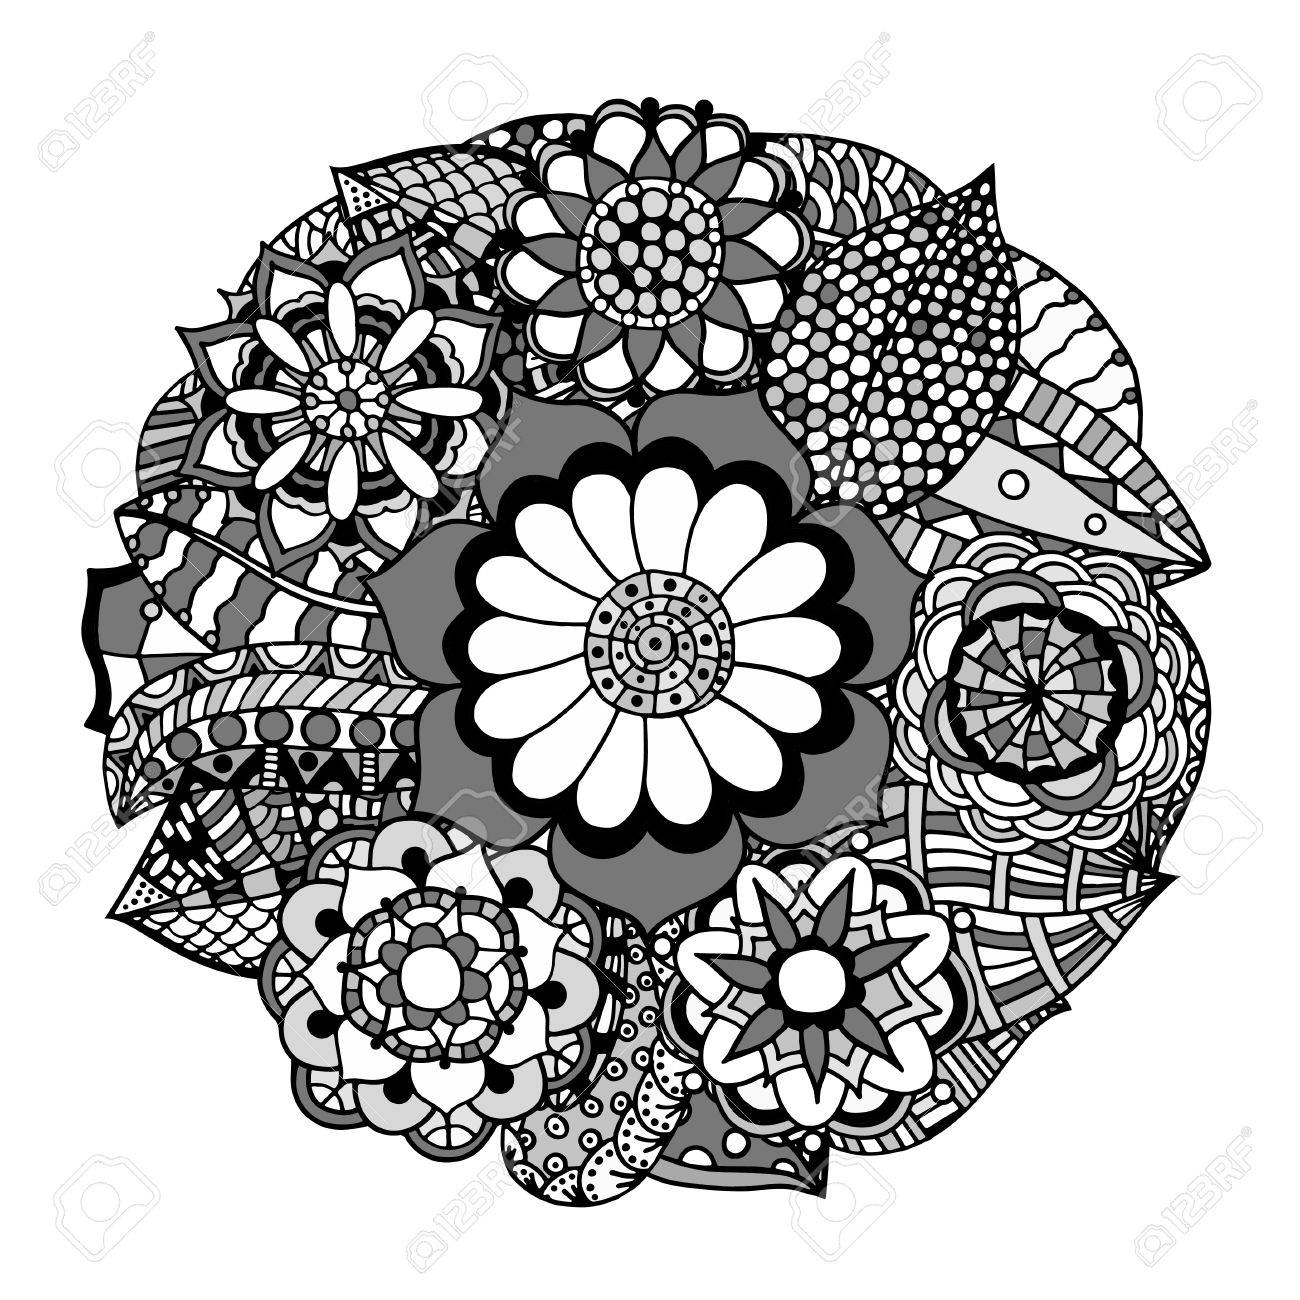 1300x1300 Black And White Circle Flower Ornament, Ornamental Round Lace